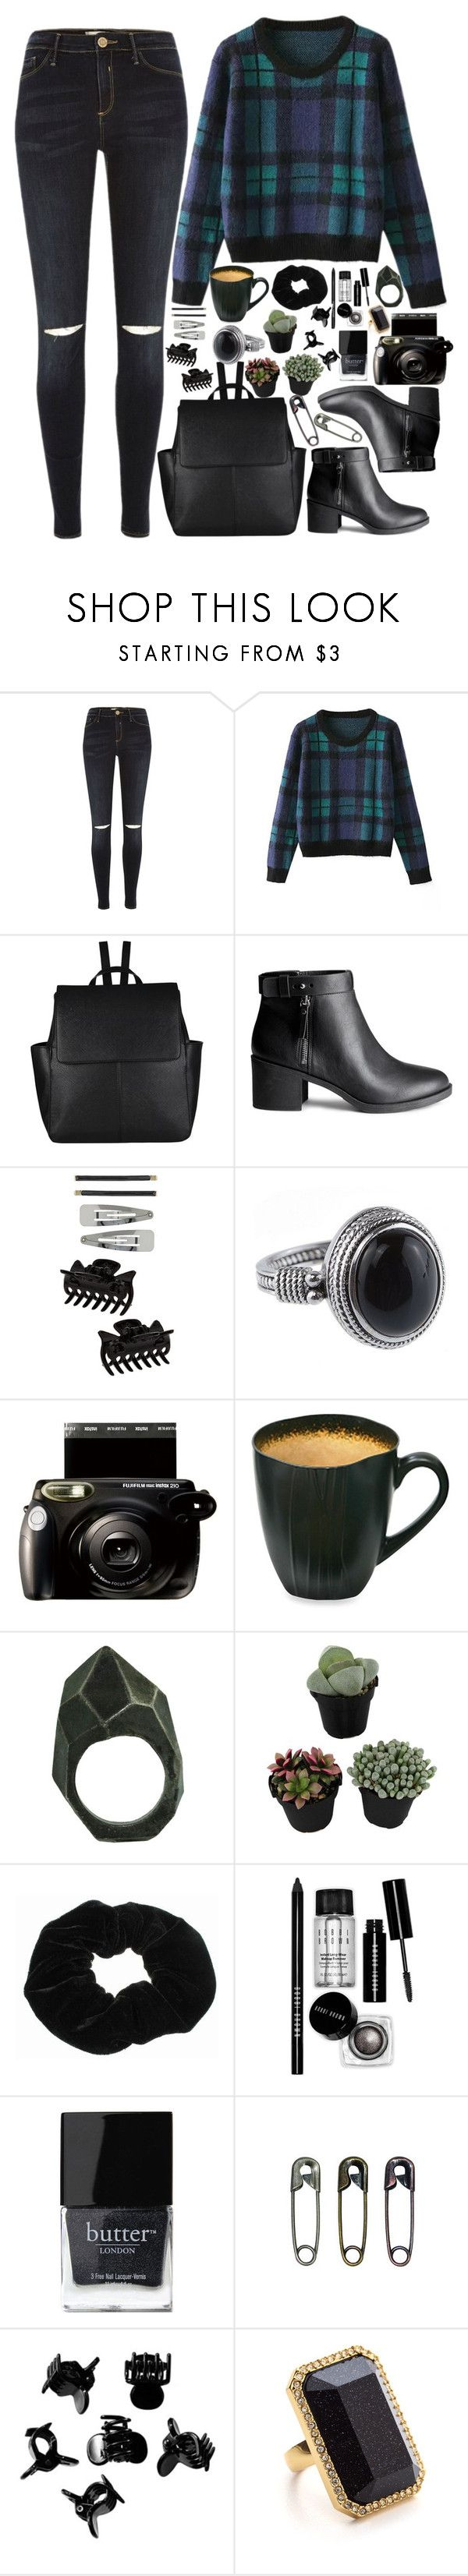 """""""Well, I've lost it all, I'm just a silouhette"""" by annaclaraalvez ❤ liked on Polyvore featuring River Island, Chicnova Fashion, John Lewis, H&M, Dorothy Perkins, Fujifilm, Baum, Lady Grey, Bobbi Brown Cosmetics and Butter London"""